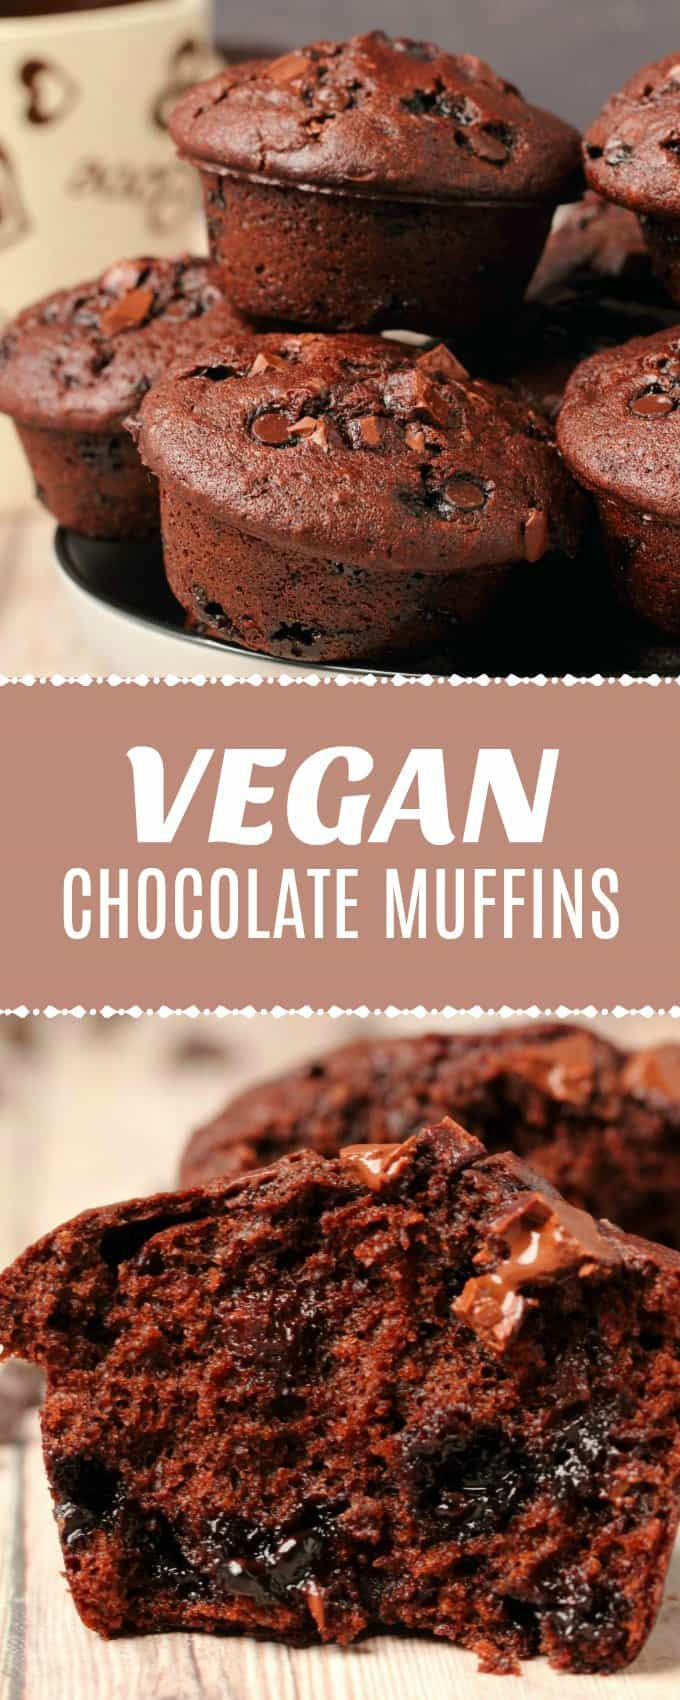 Double chocolate vegan chocolate muffins. These bakery-style muffins have a gorgeous domed top and are ultra moist and decadent.#vegan | lovingitvegan.com